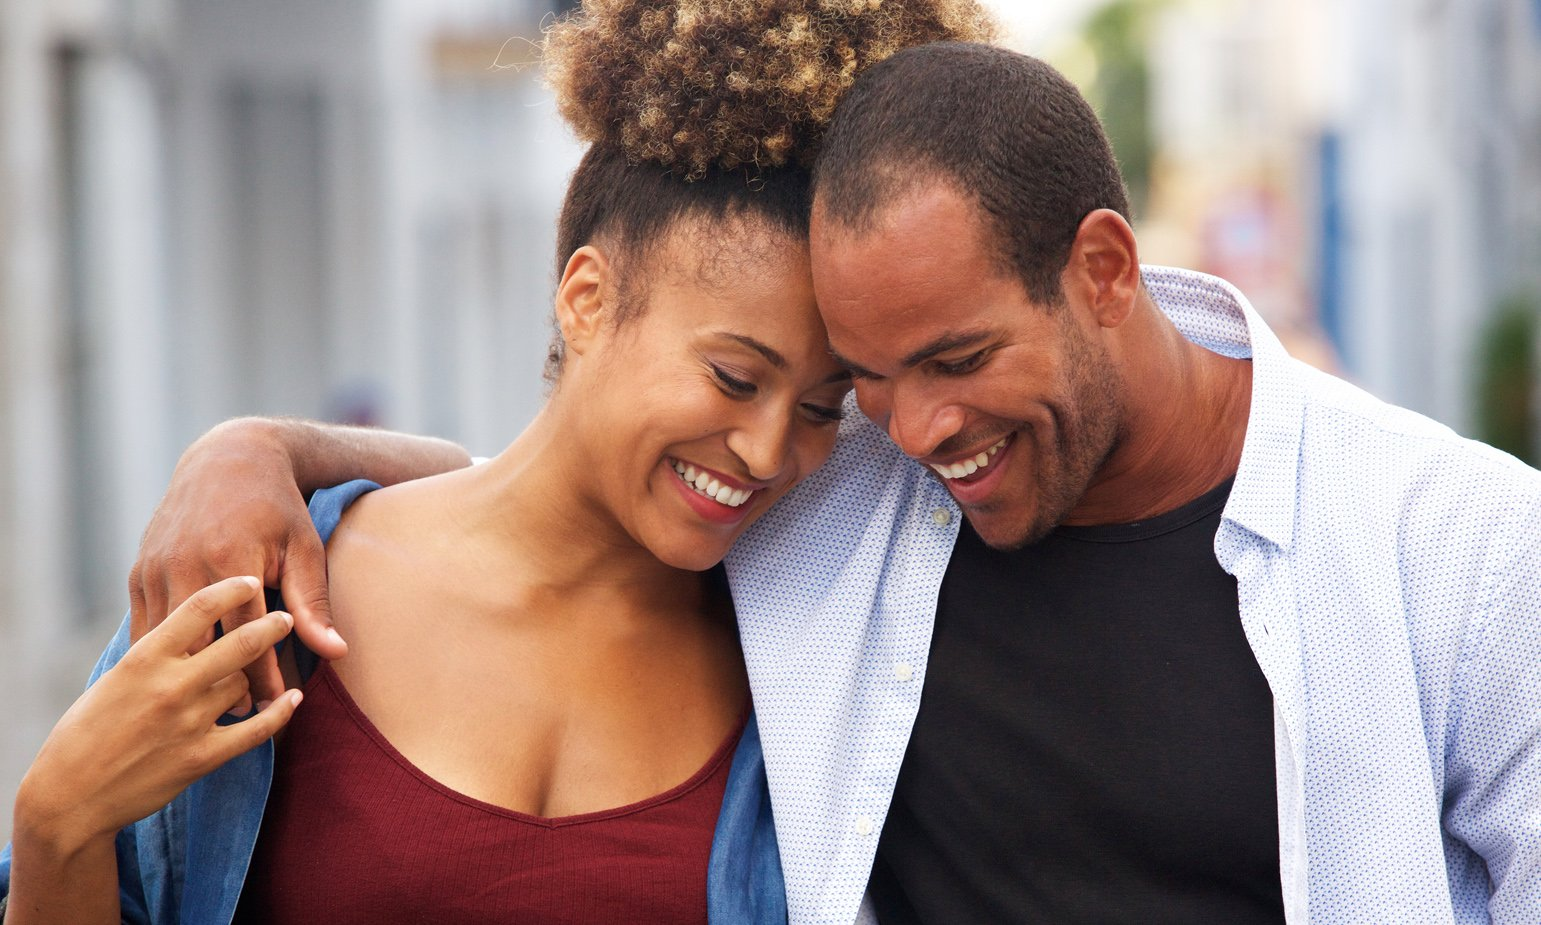 4 dating tips to finding the right person